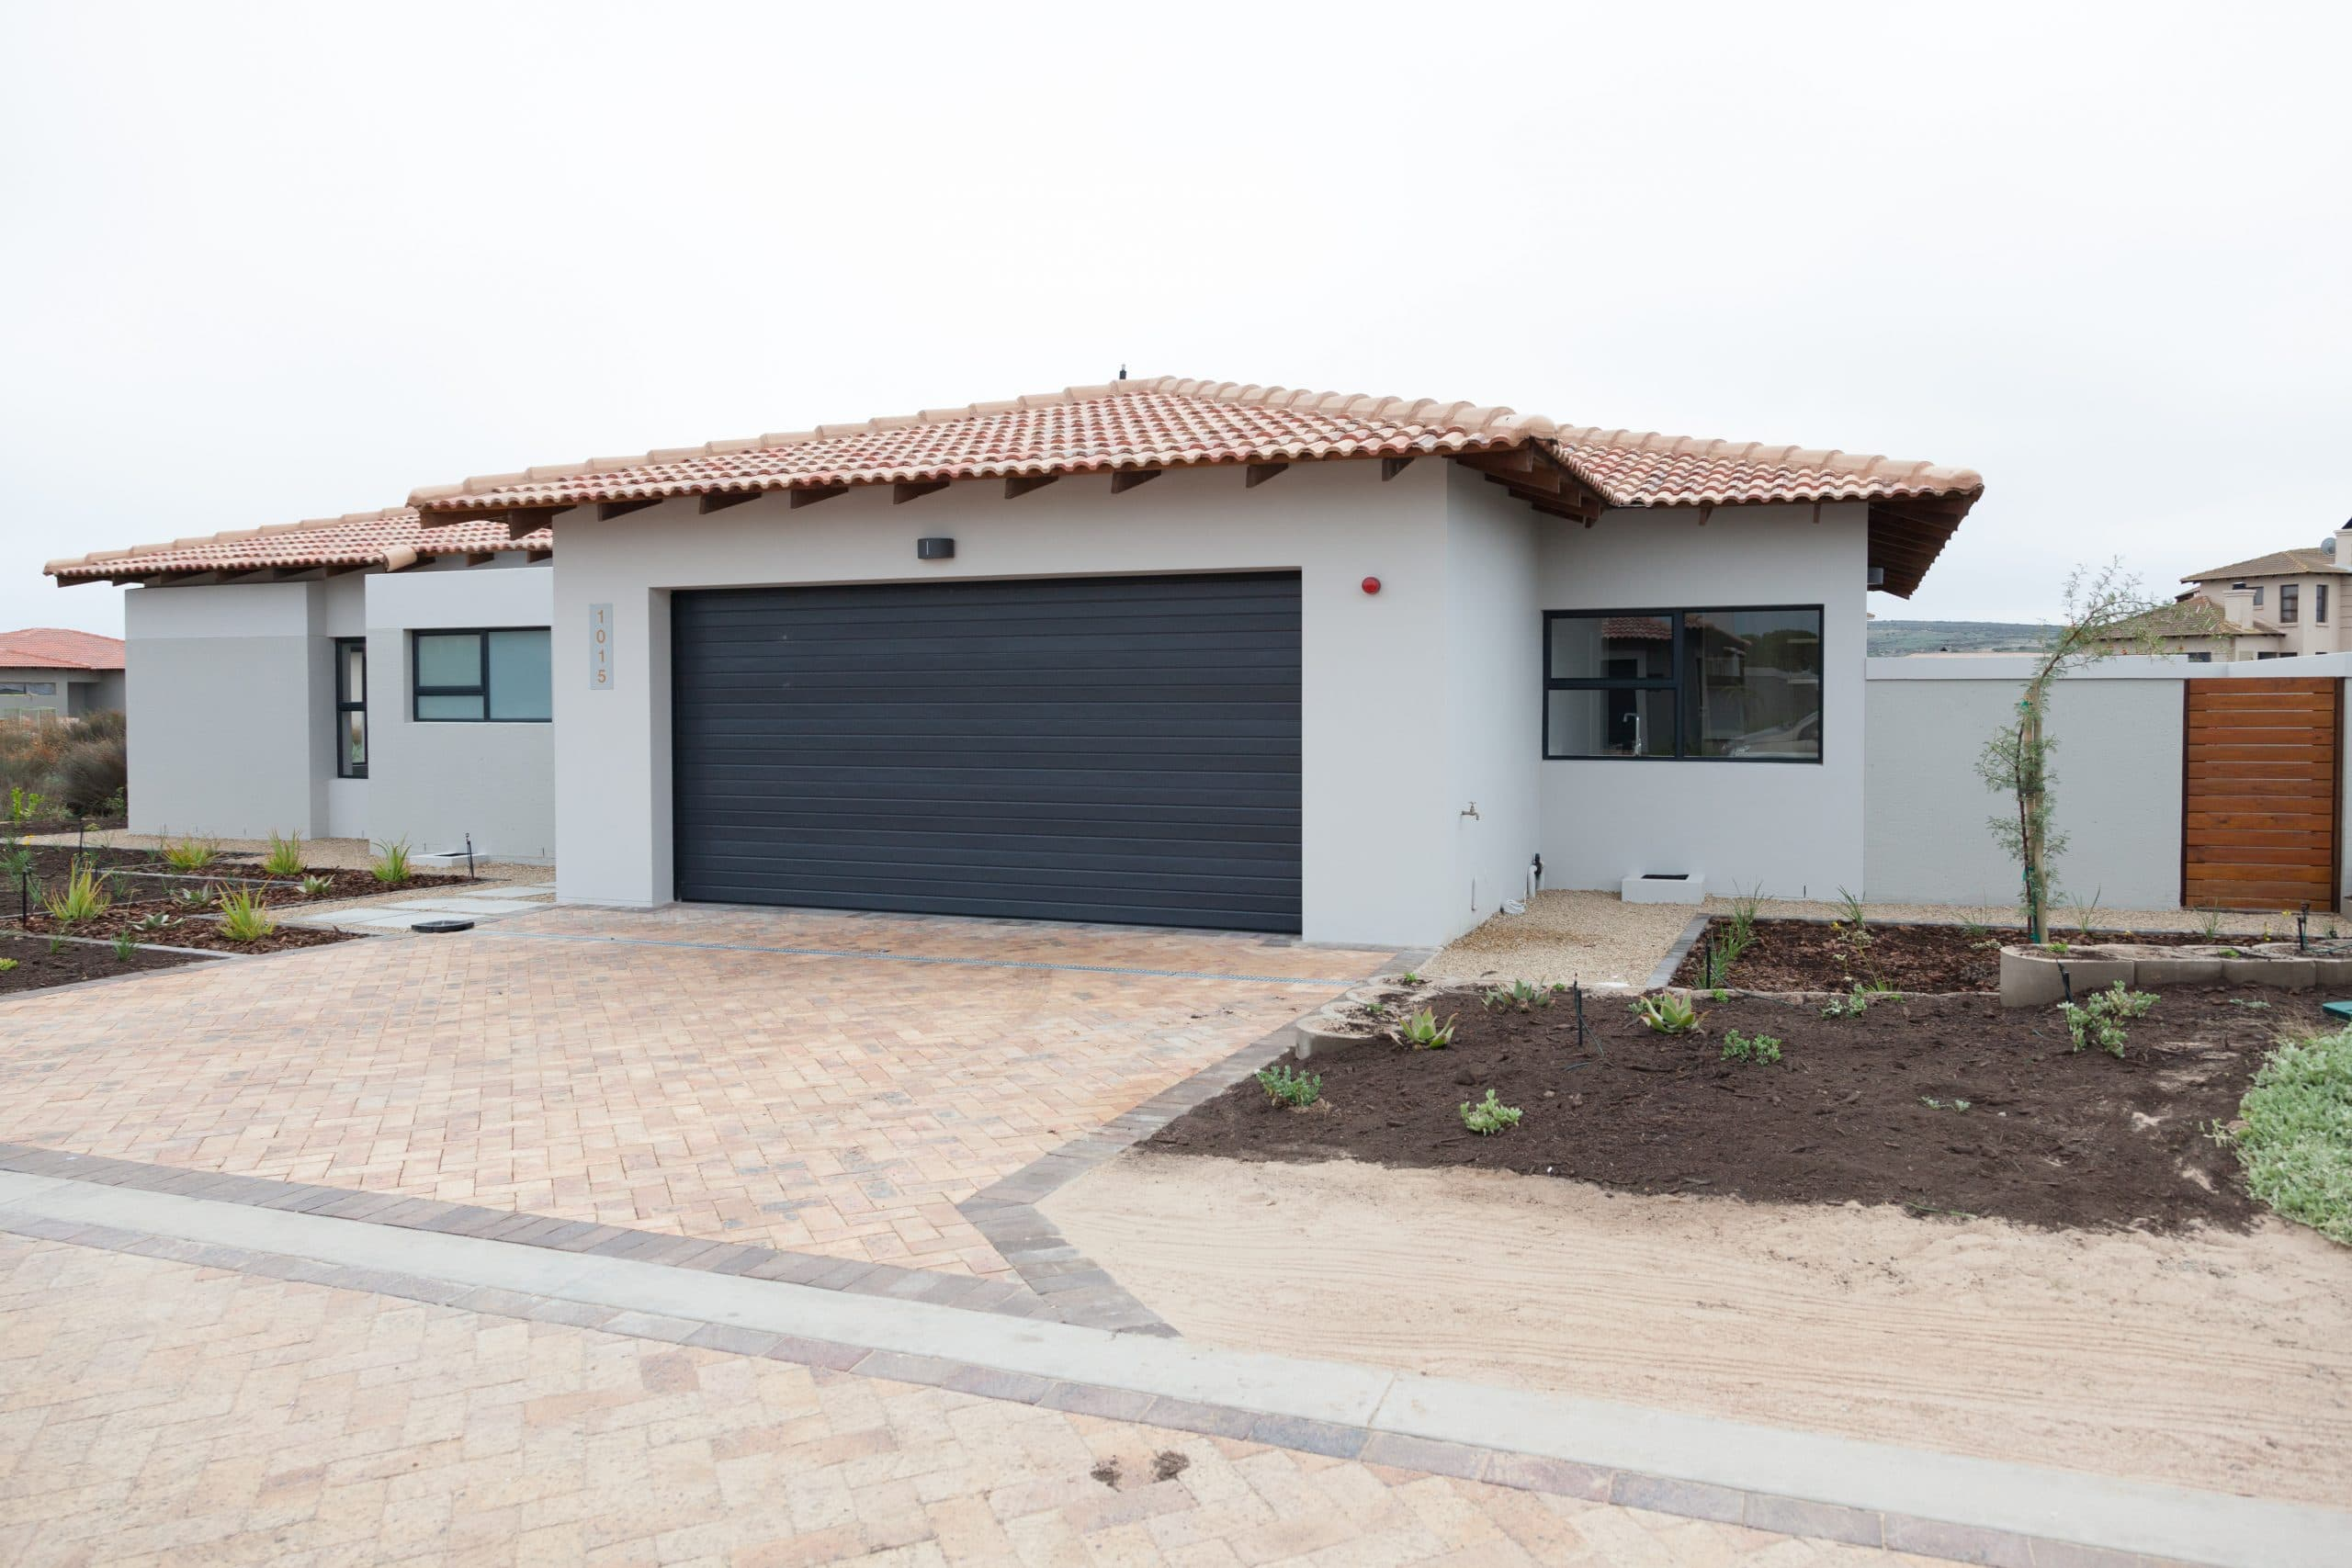 crontech consulting architecture homes langebaan country estate